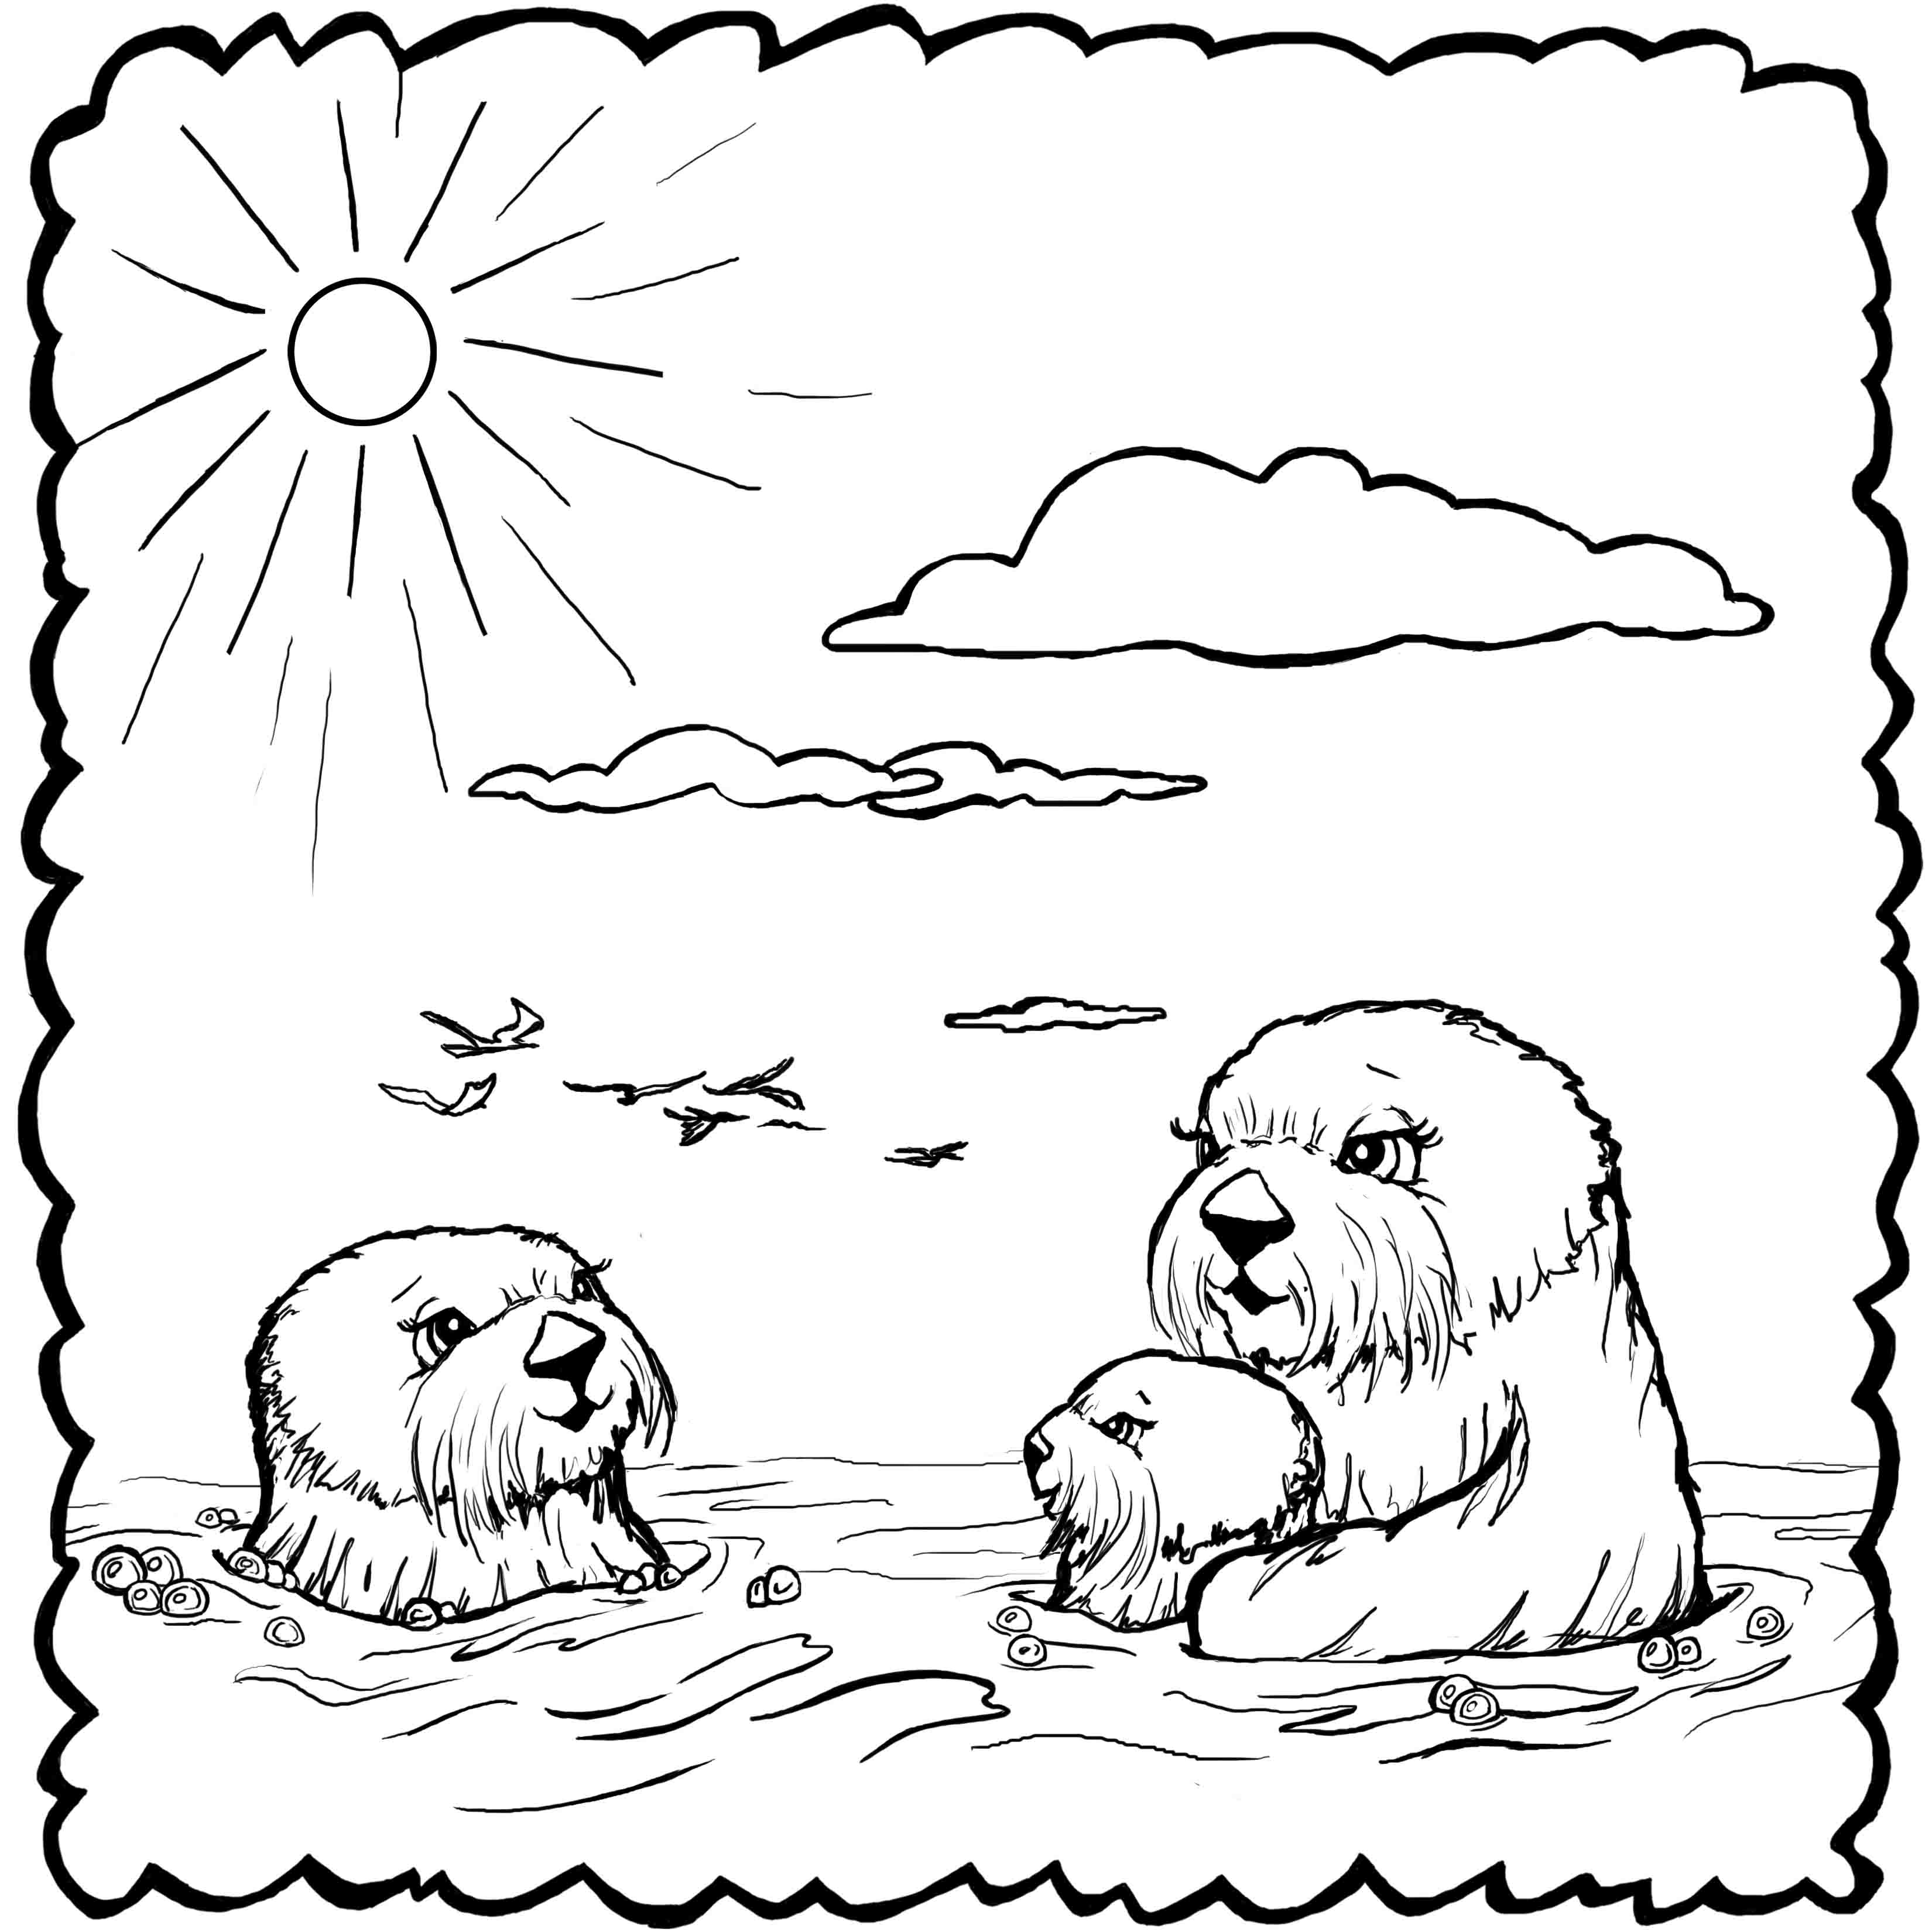 otter coloring page coloring pages josh the otter coloring page otter